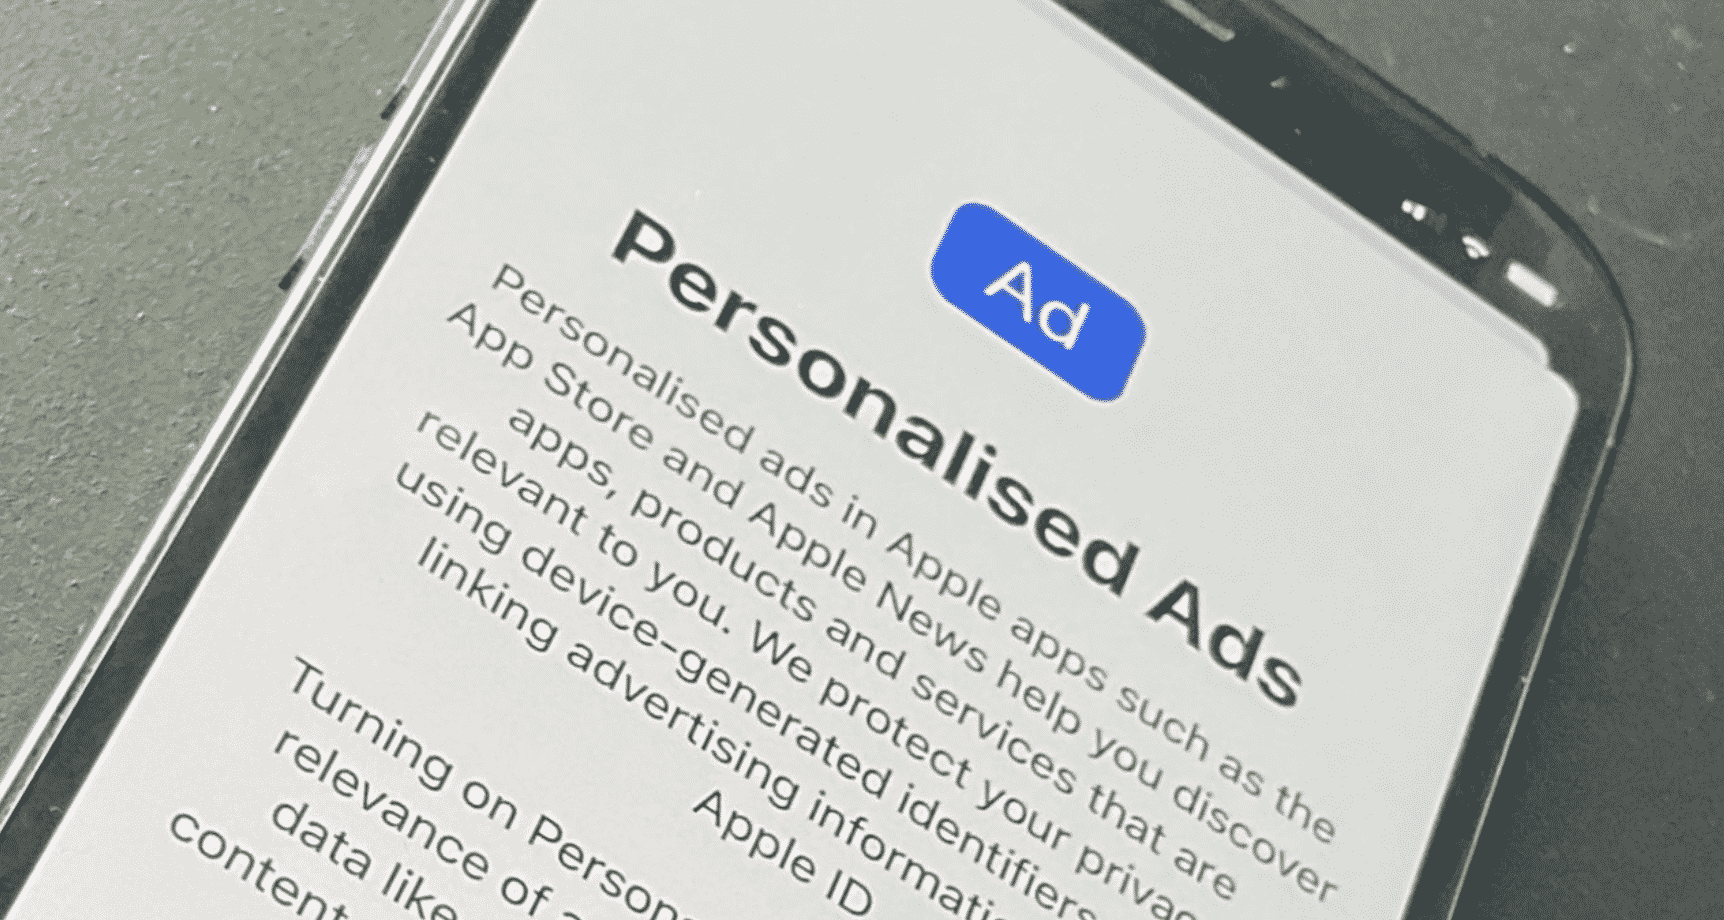 Personalized Ads toggle appears on iOS 15